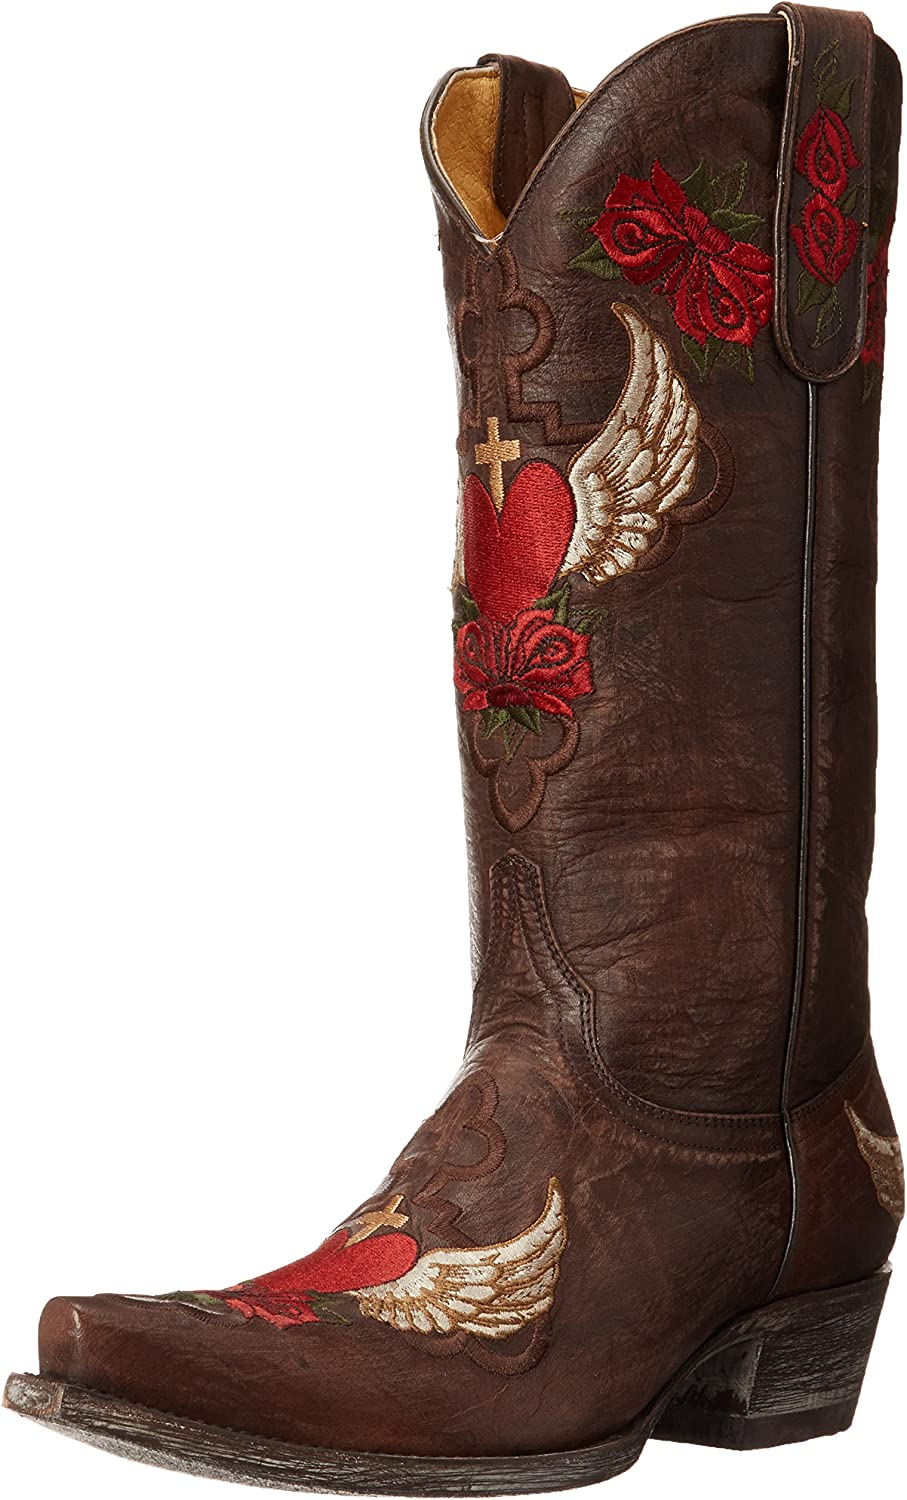 Yippee Kay Yay durch alt Gringo Women'S Abby Western Boot